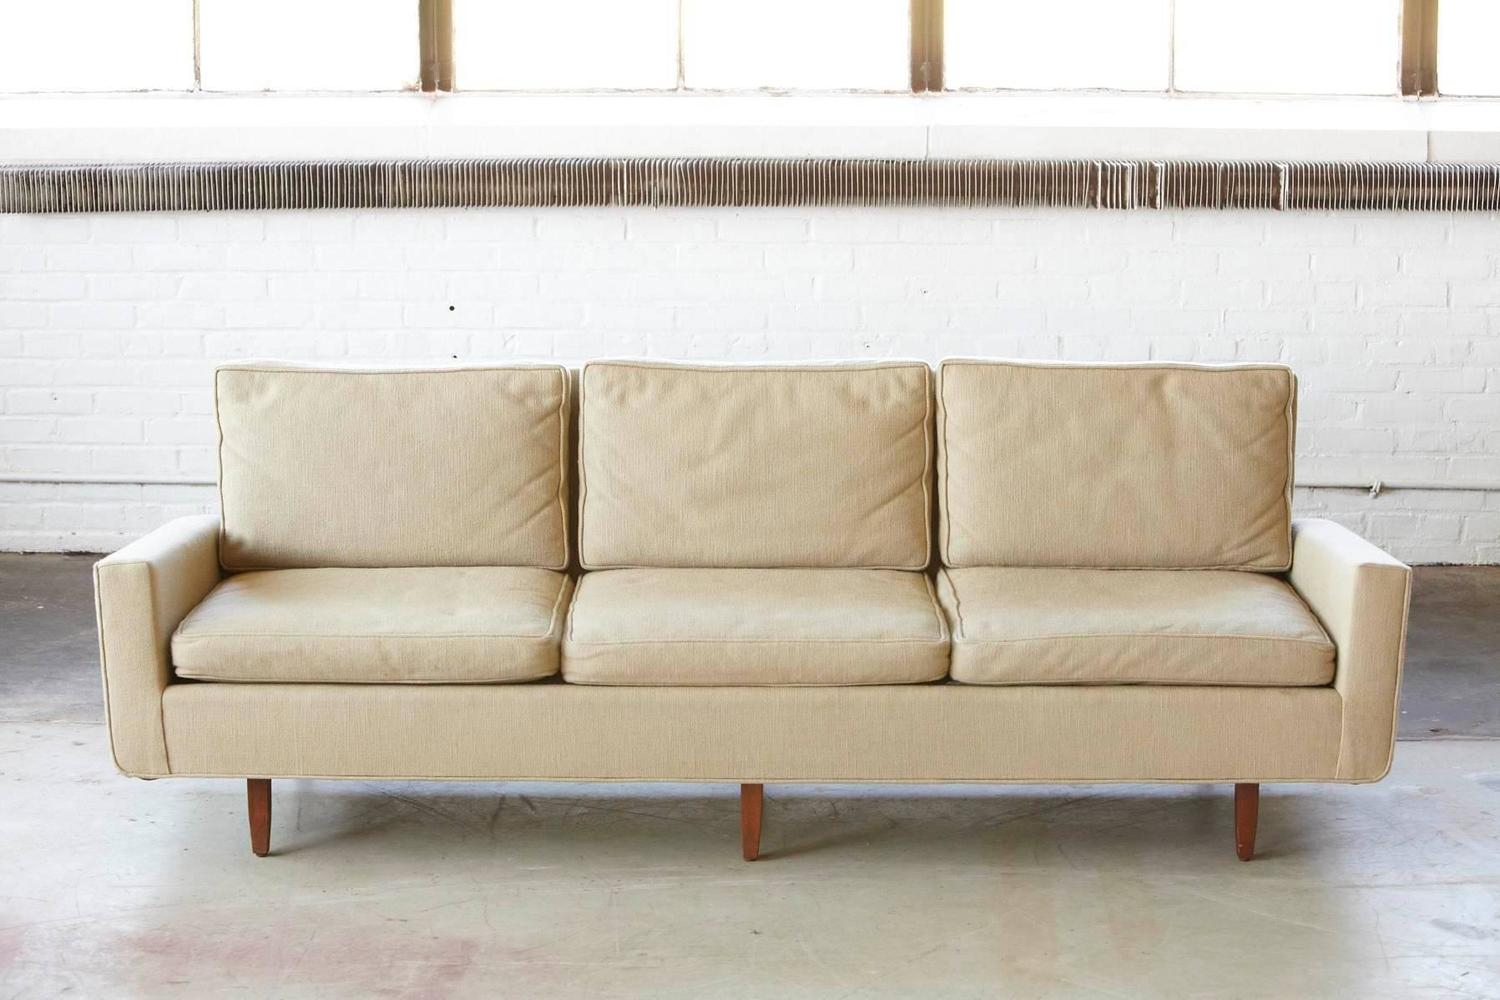 Early Florence Knoll Sofa Model # 26D From 1967 With With Regard To Florence Knoll Fabric Sofas (View 2 of 15)